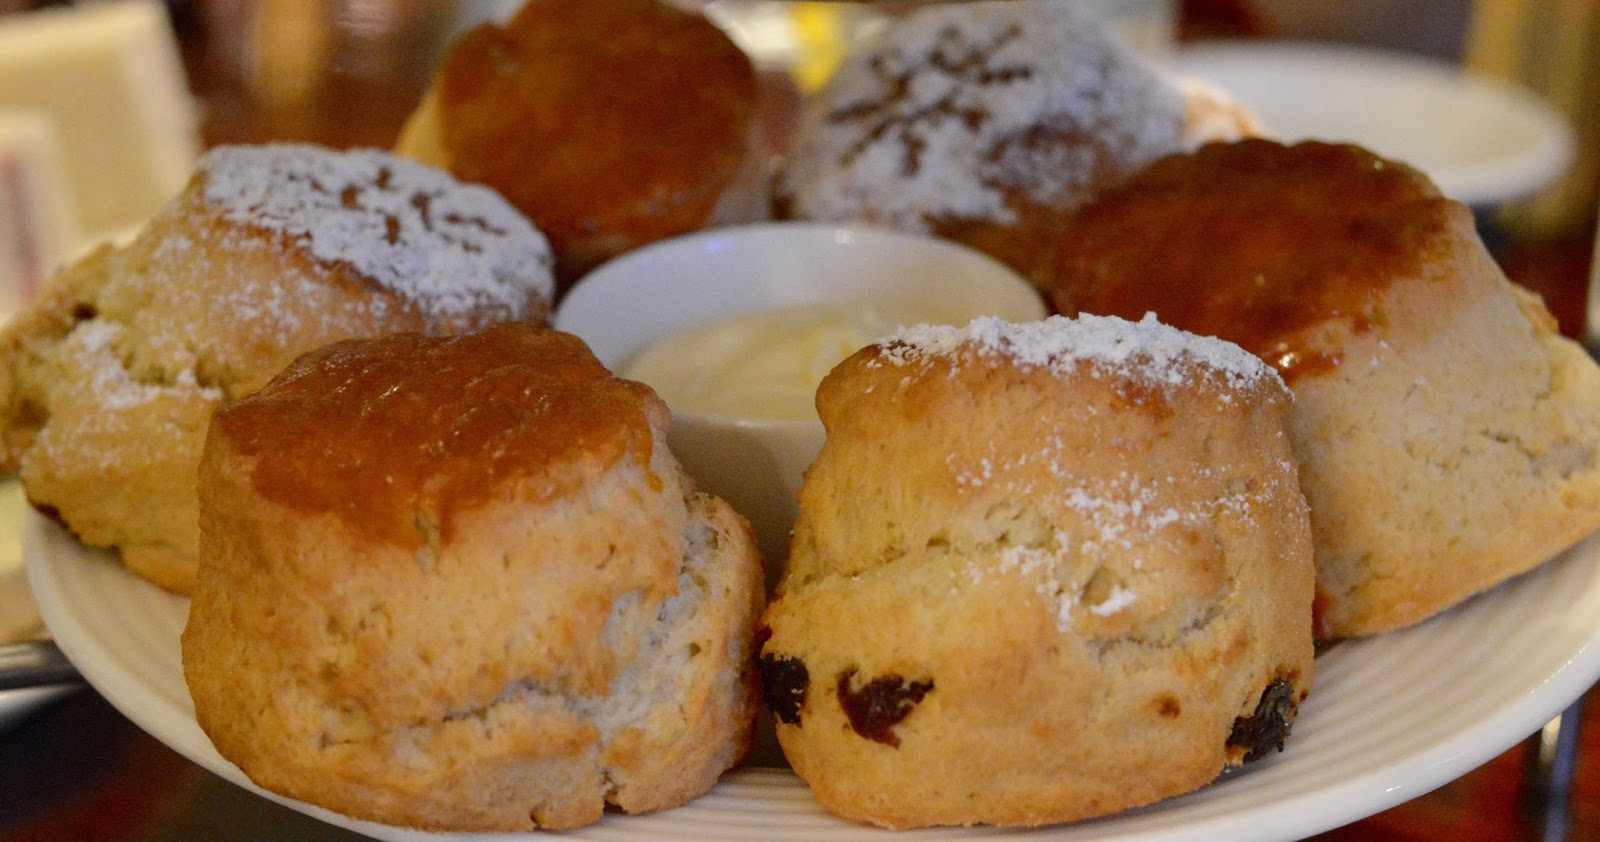 Afternoon tea at Wynyard Hall (with kids) - A Review - scones